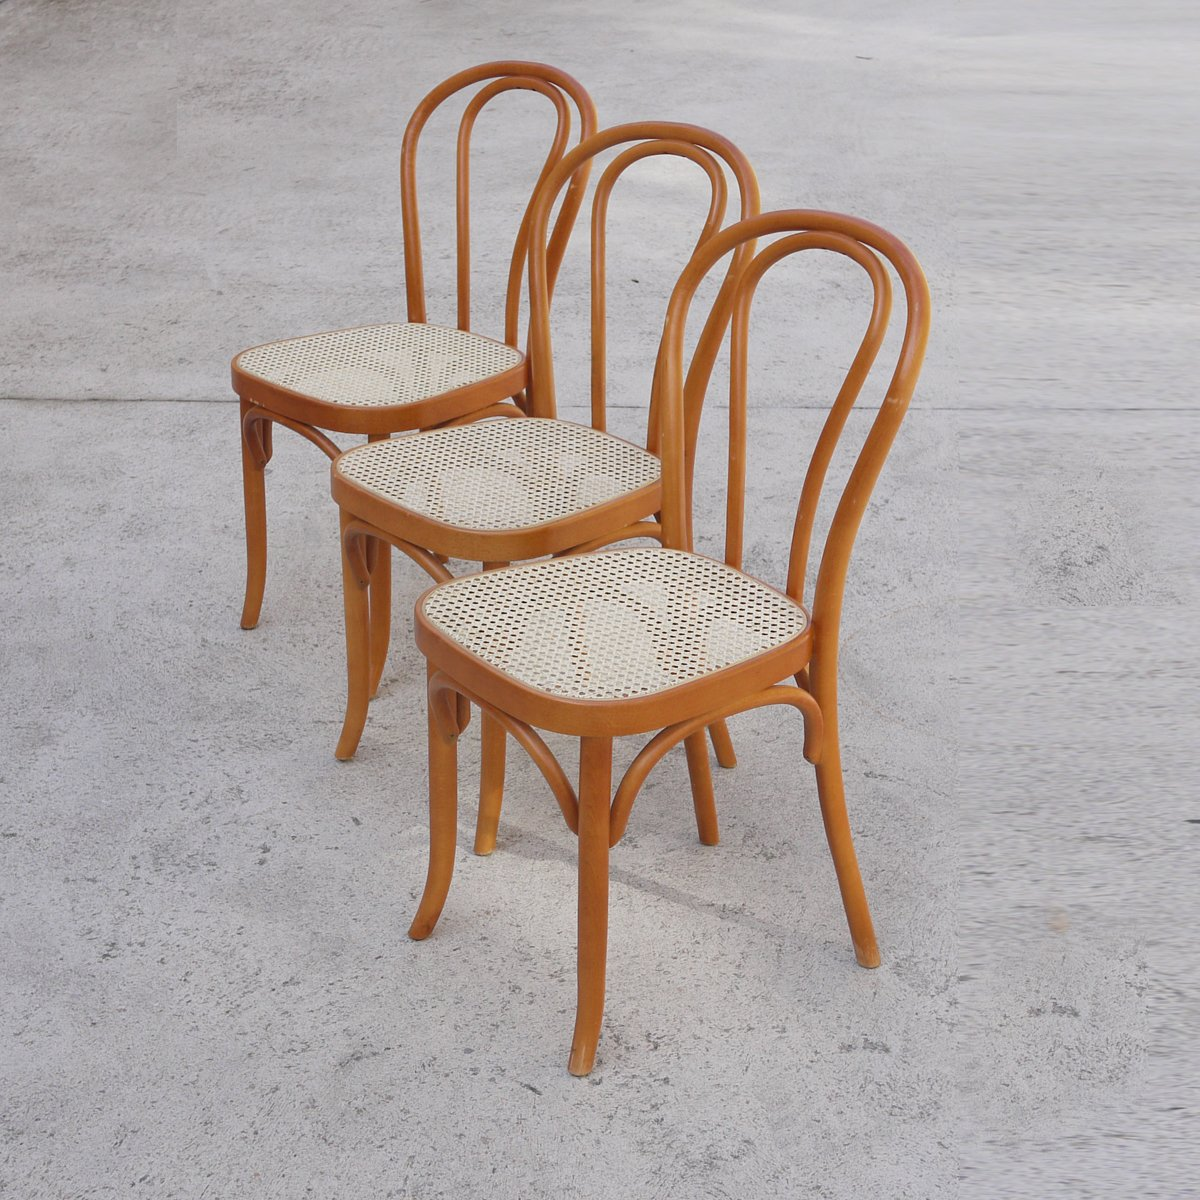 Vintage Bentwood Rattan Dining Chairs Set Of 3 For Sale